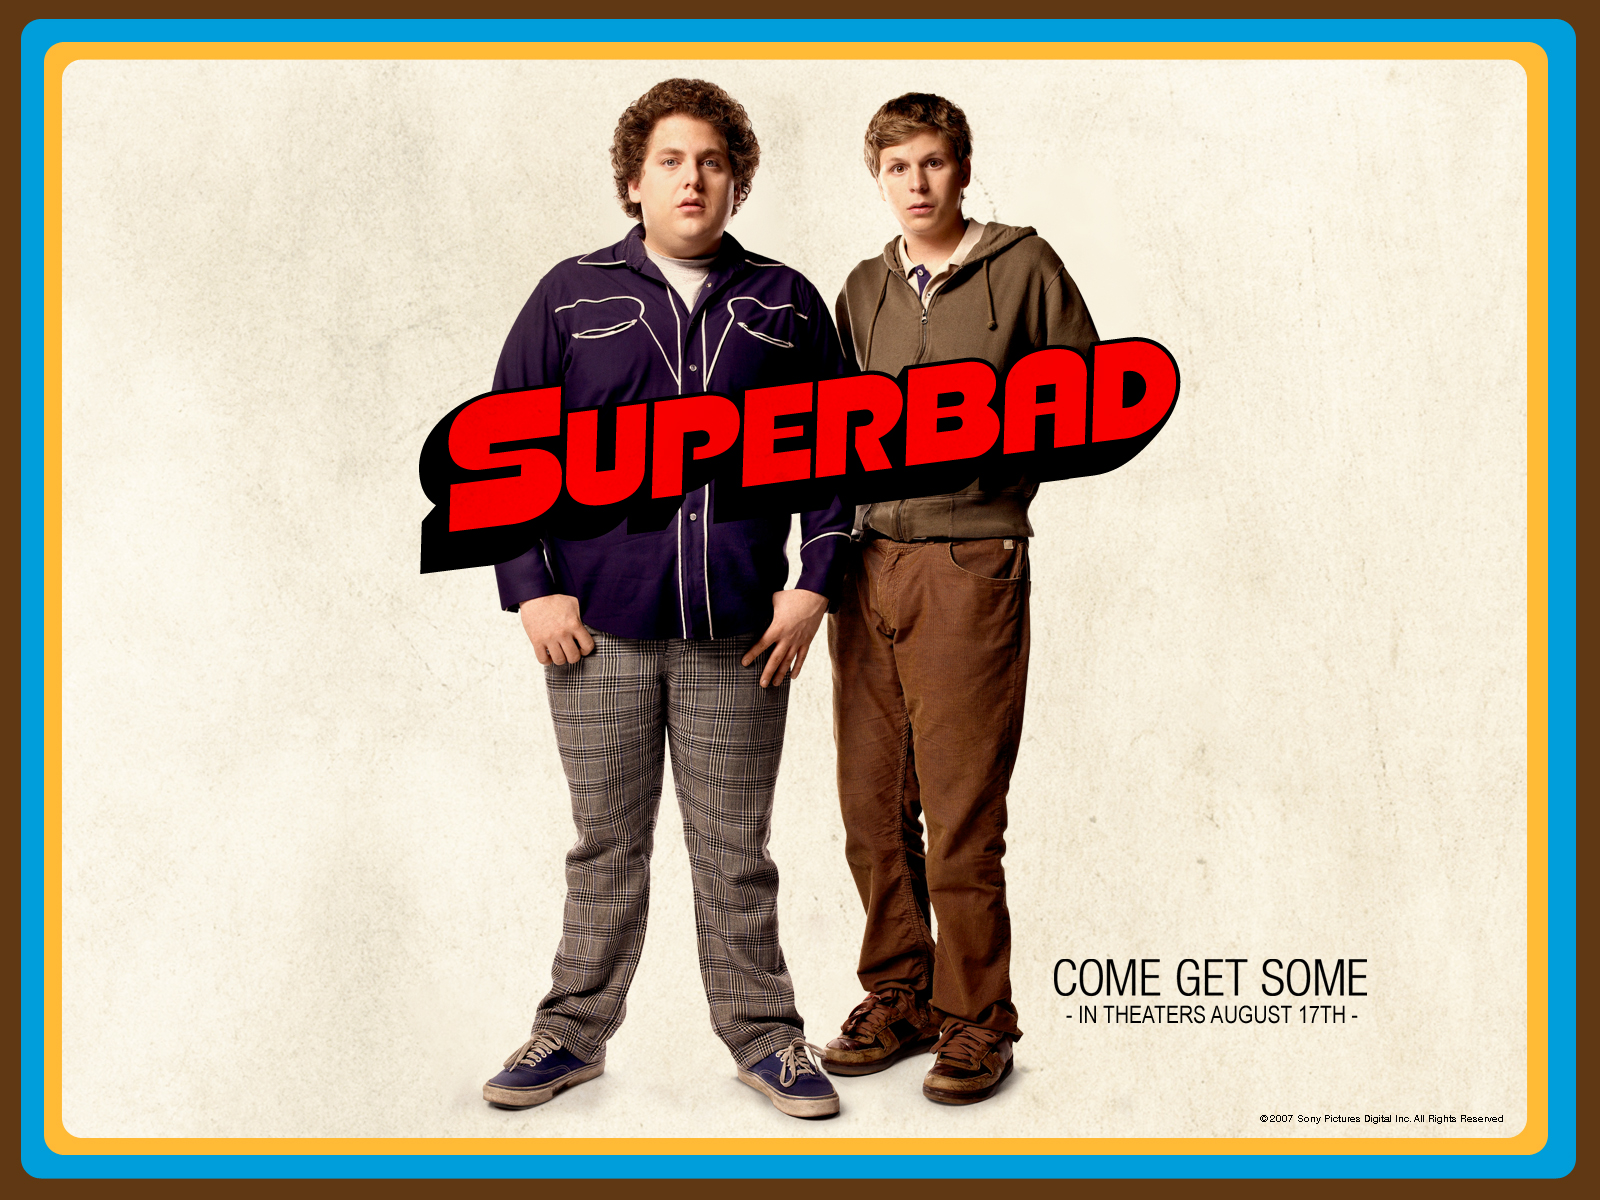 Superbad-Wallpaper-michael-cera-387330_1600_1200